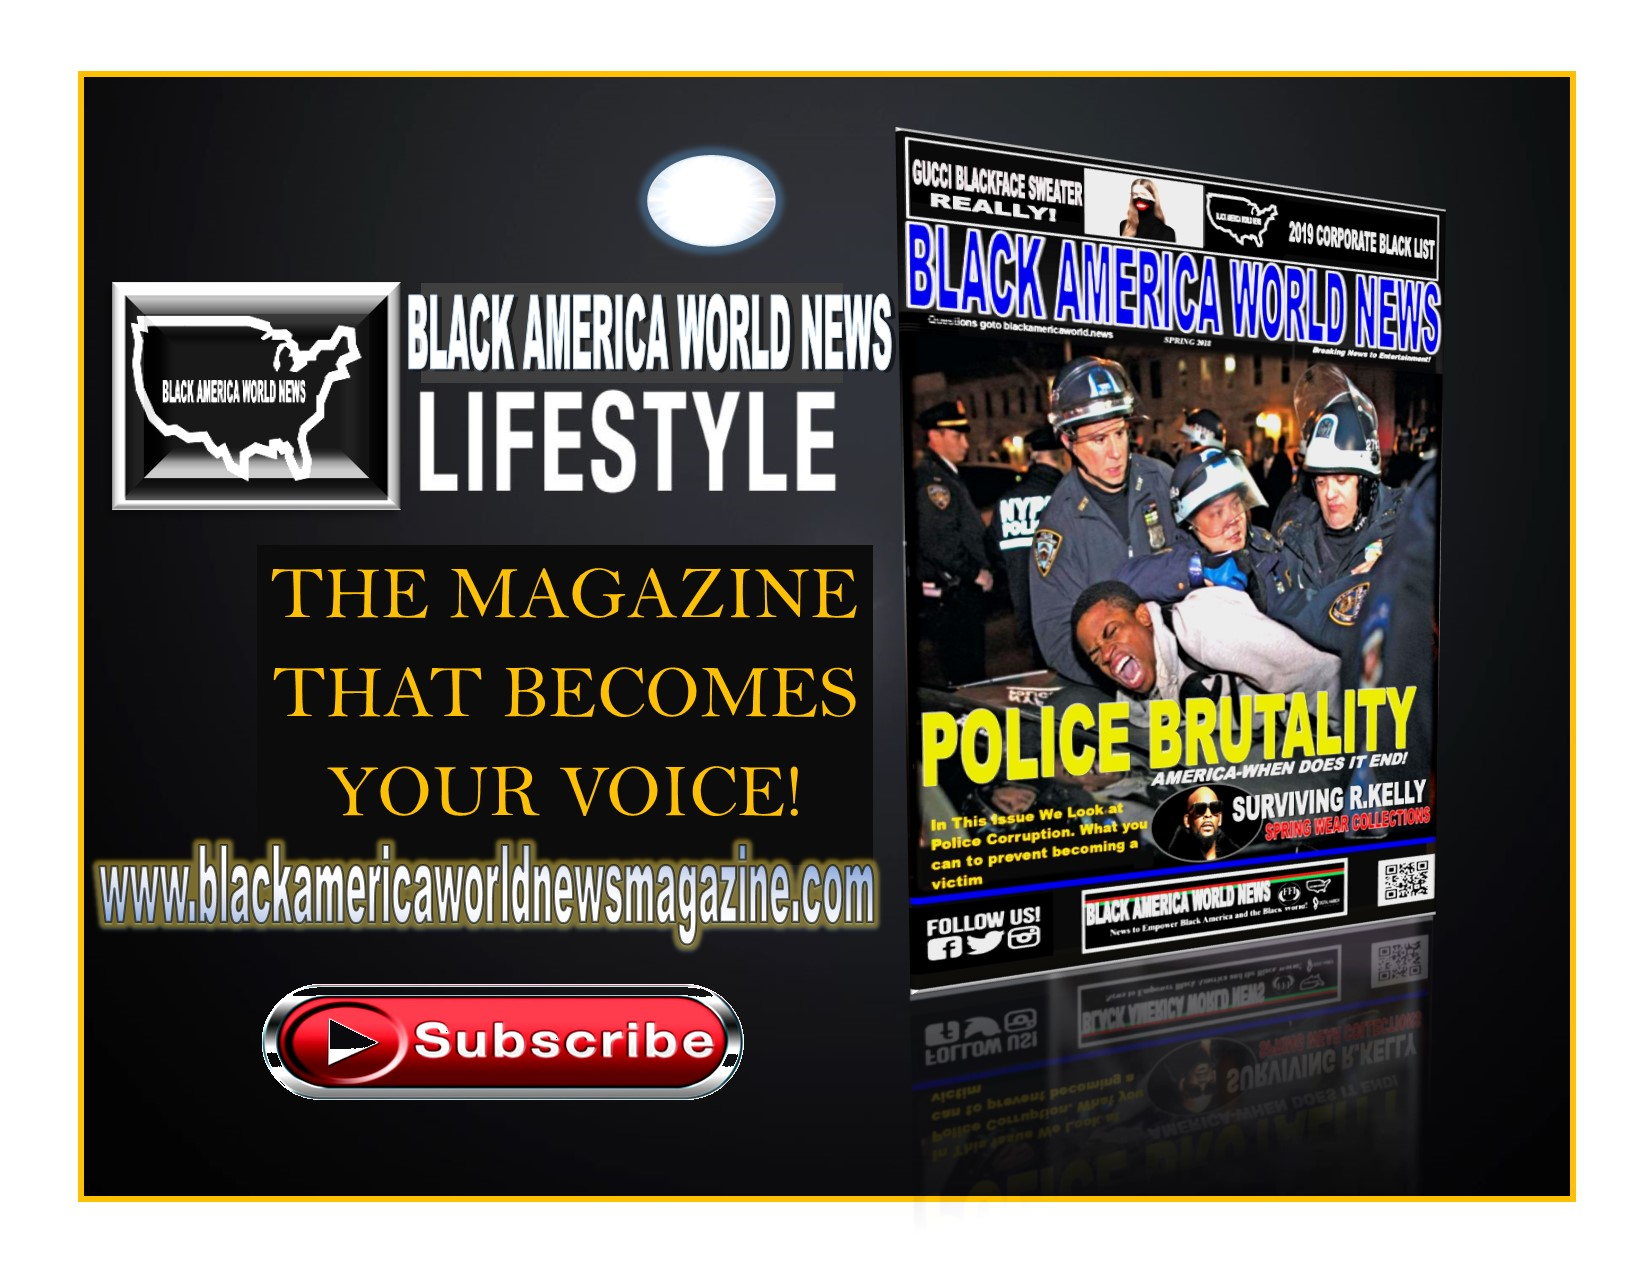 Black America World News